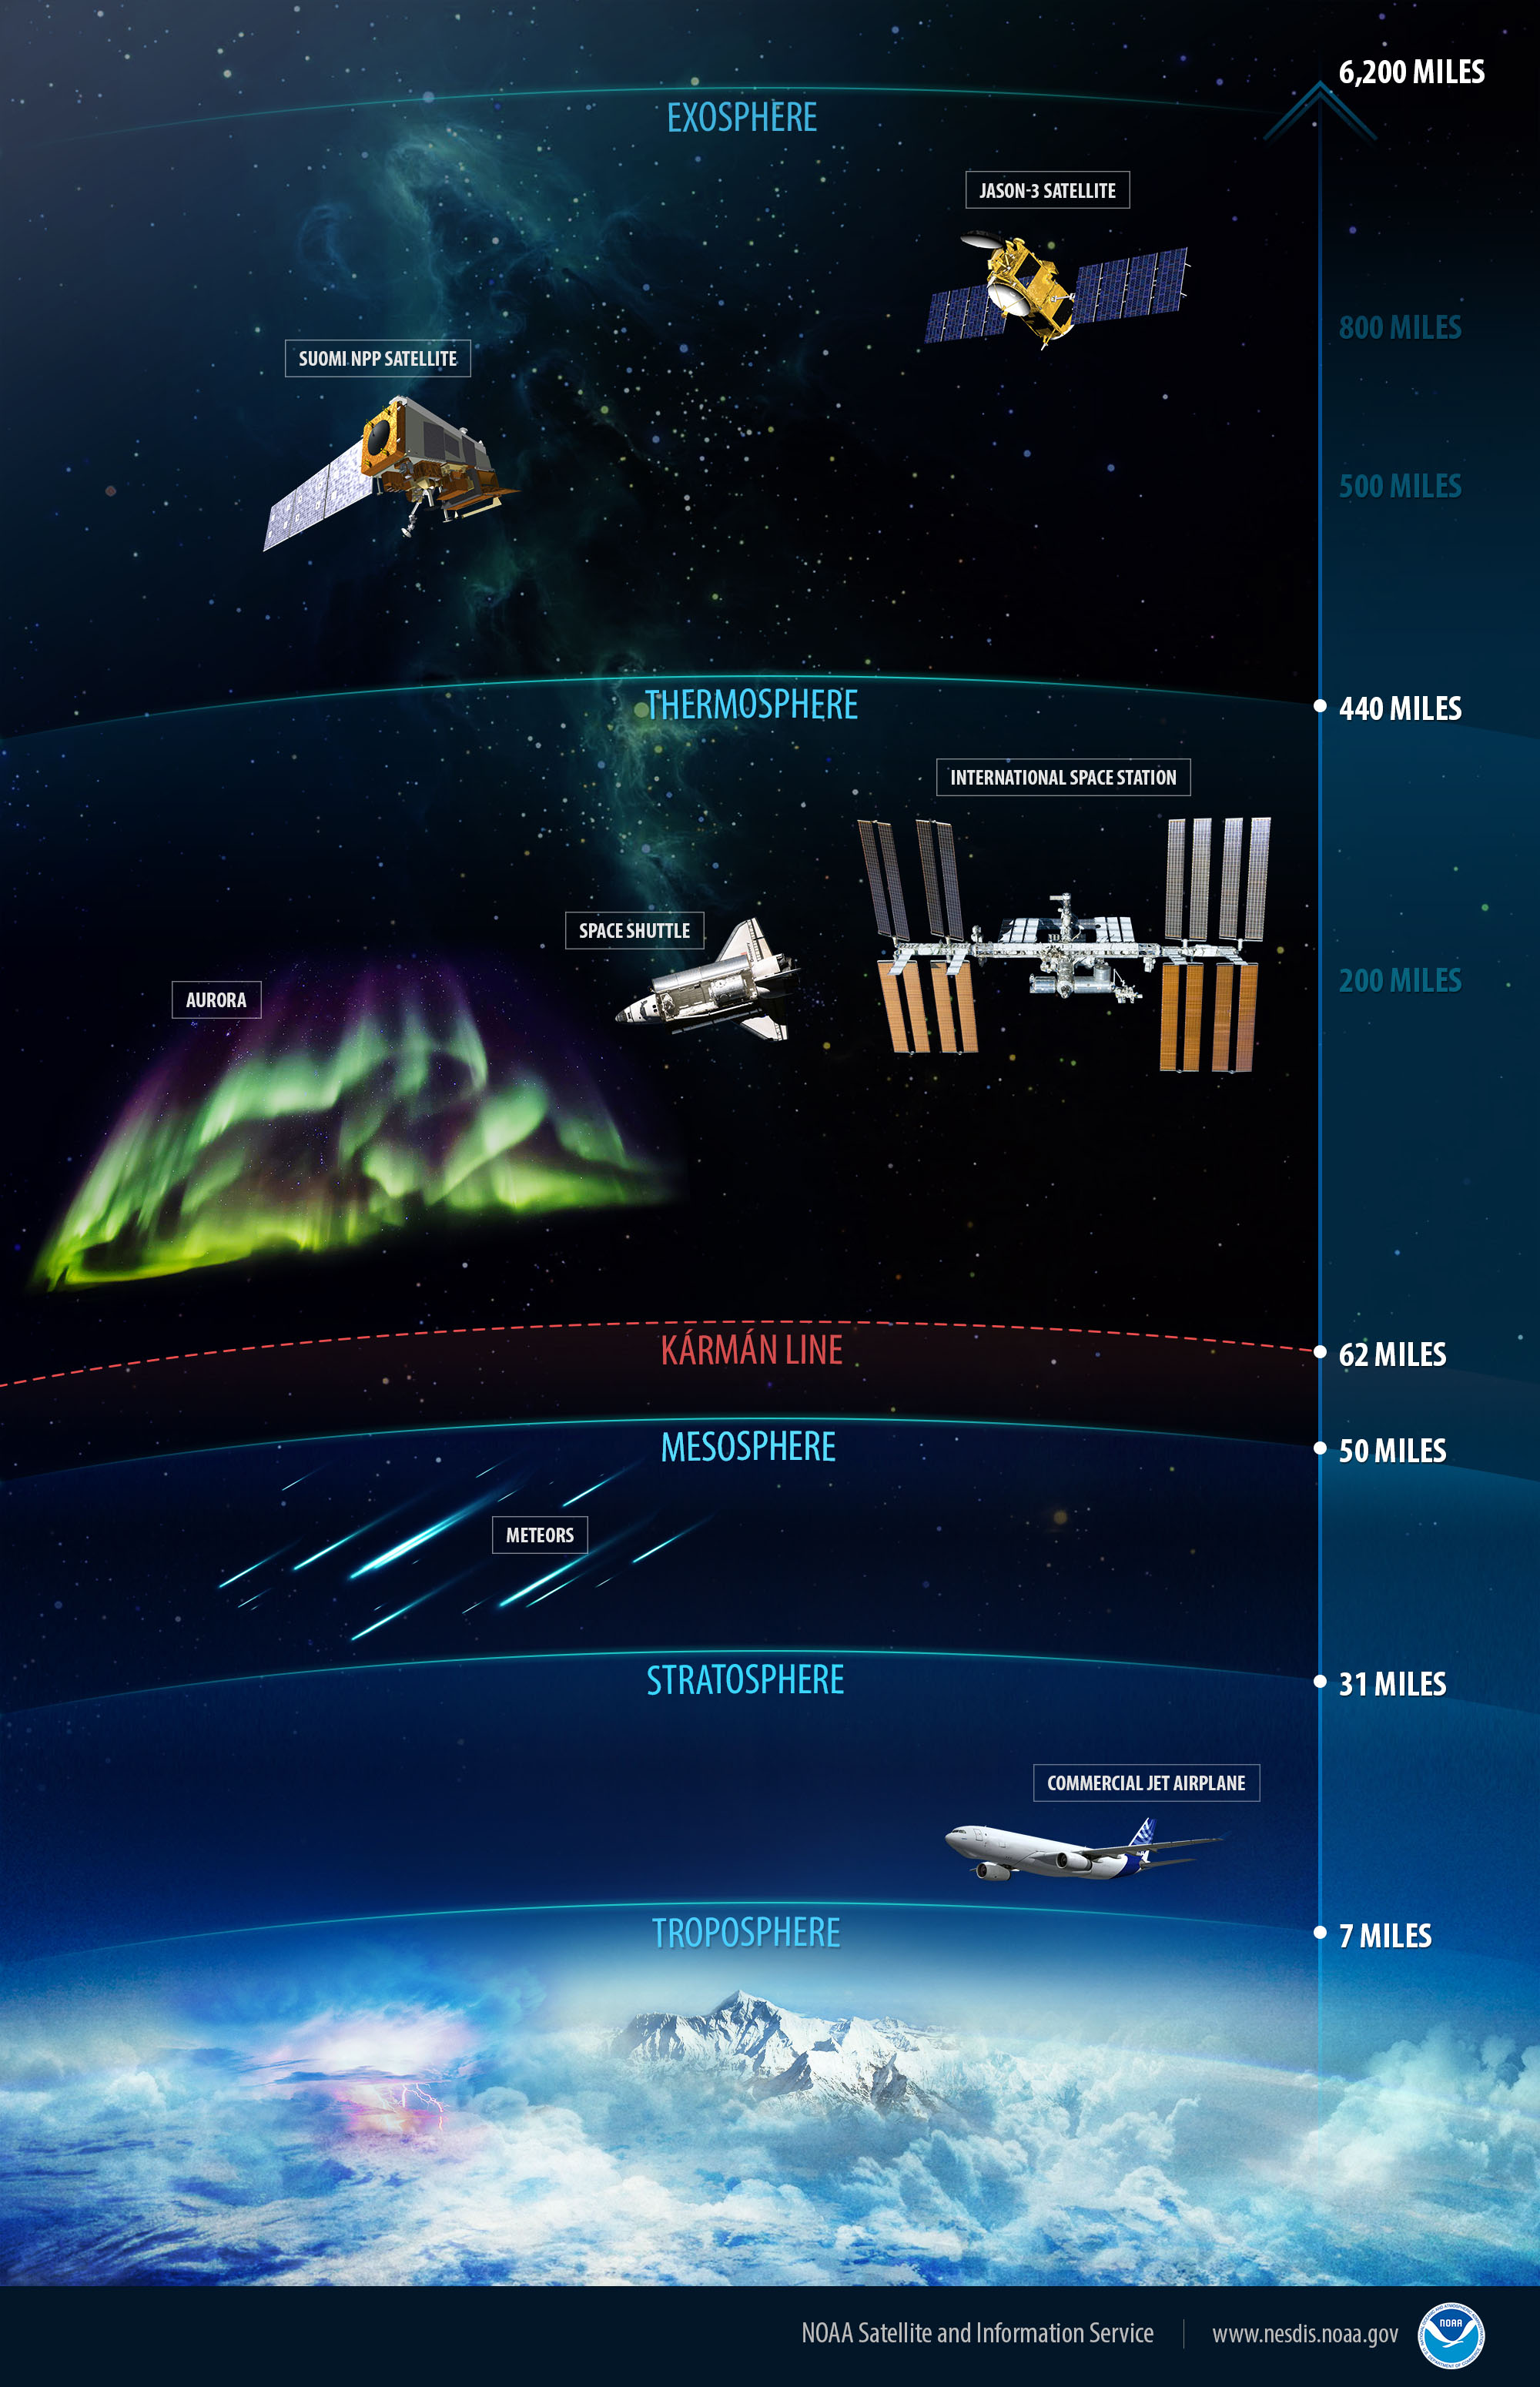 earth s atmosphere layers diagram double light switch wiring australia peeling back the of noaa national